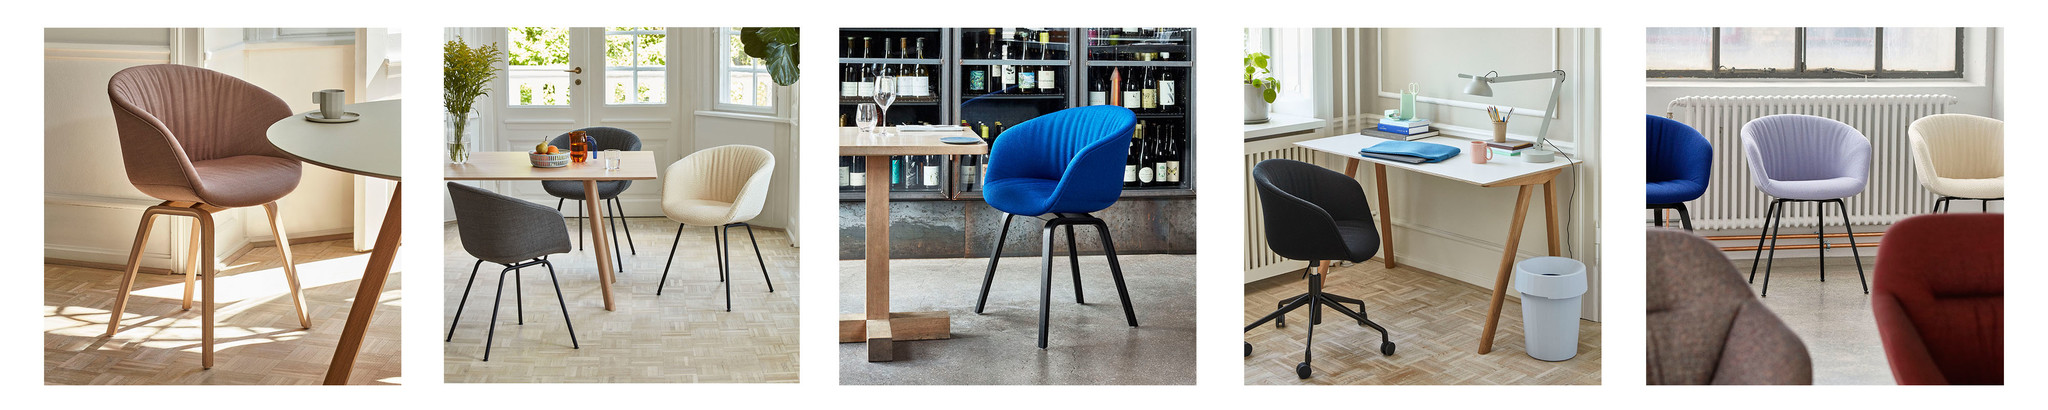 20% KORTING : DINING CAMPAIGN  HAY